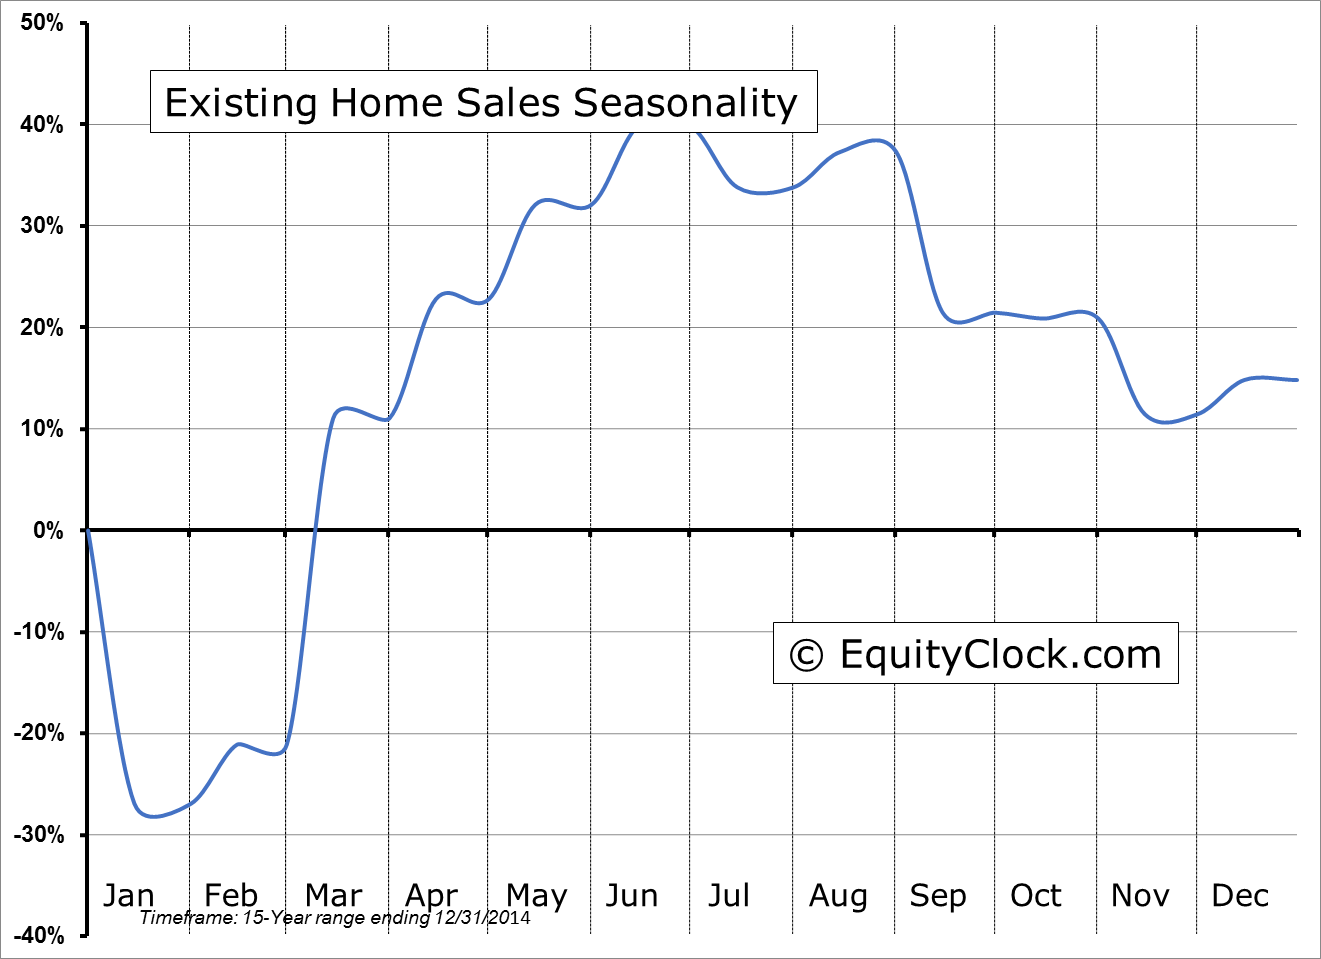 Existing Home Sales Seasonality